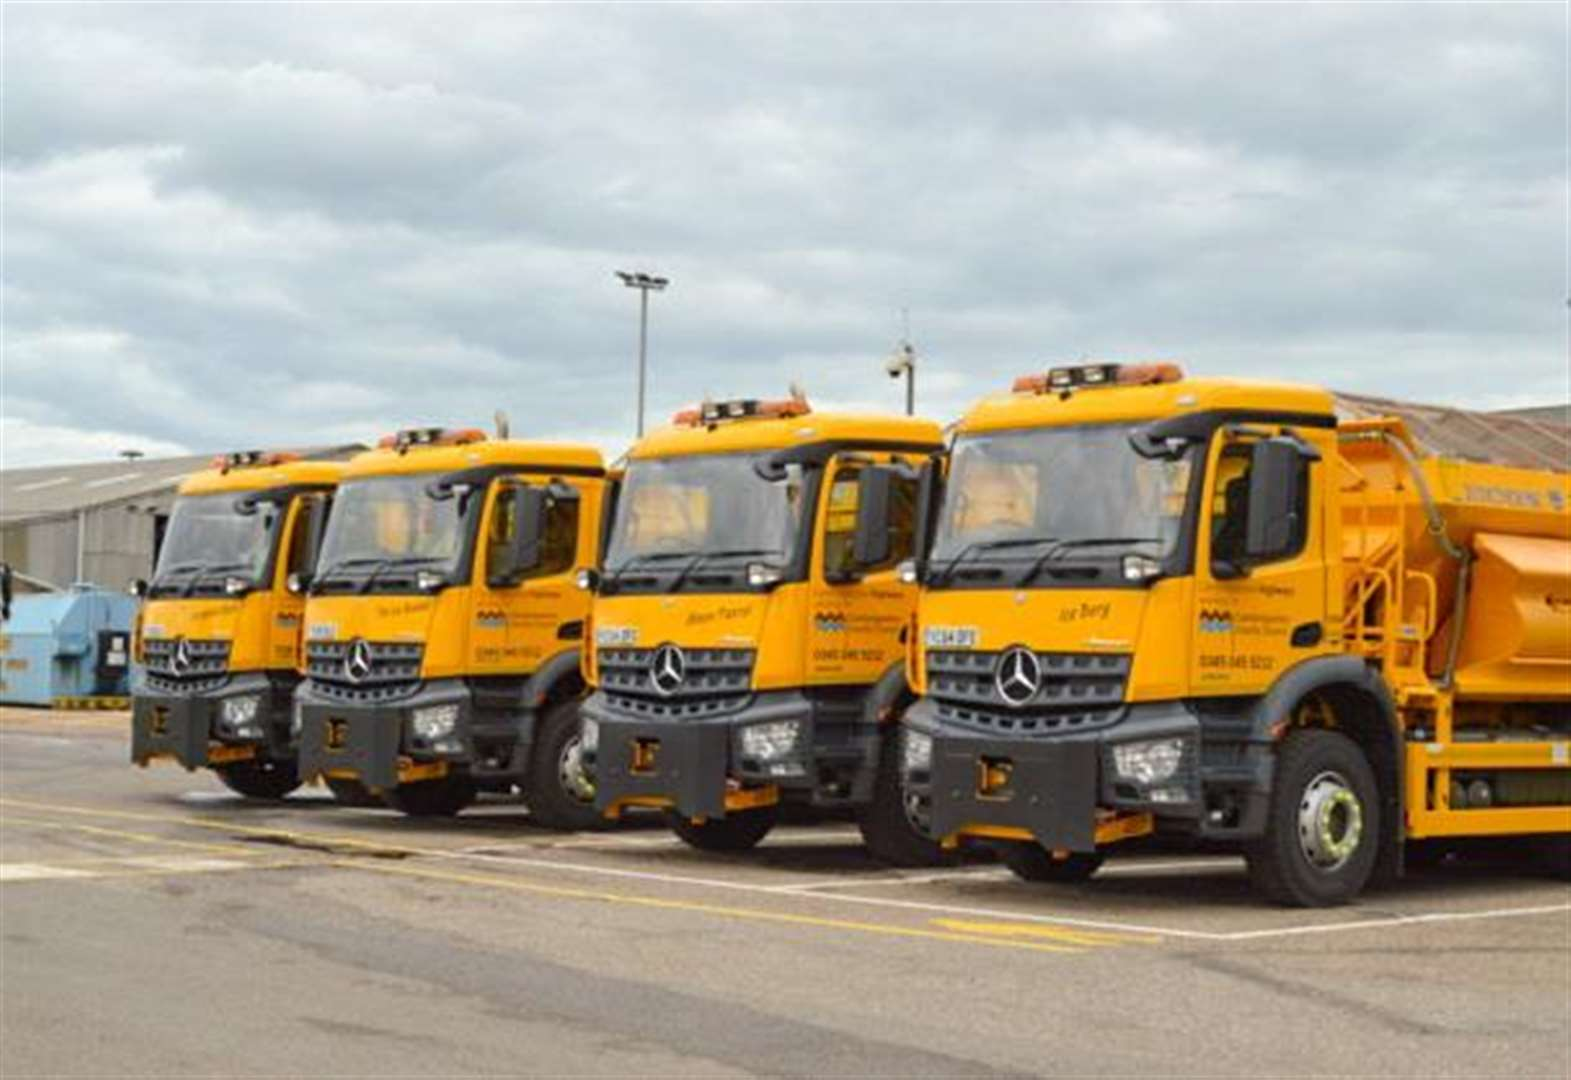 Gritters prepared for cold snap